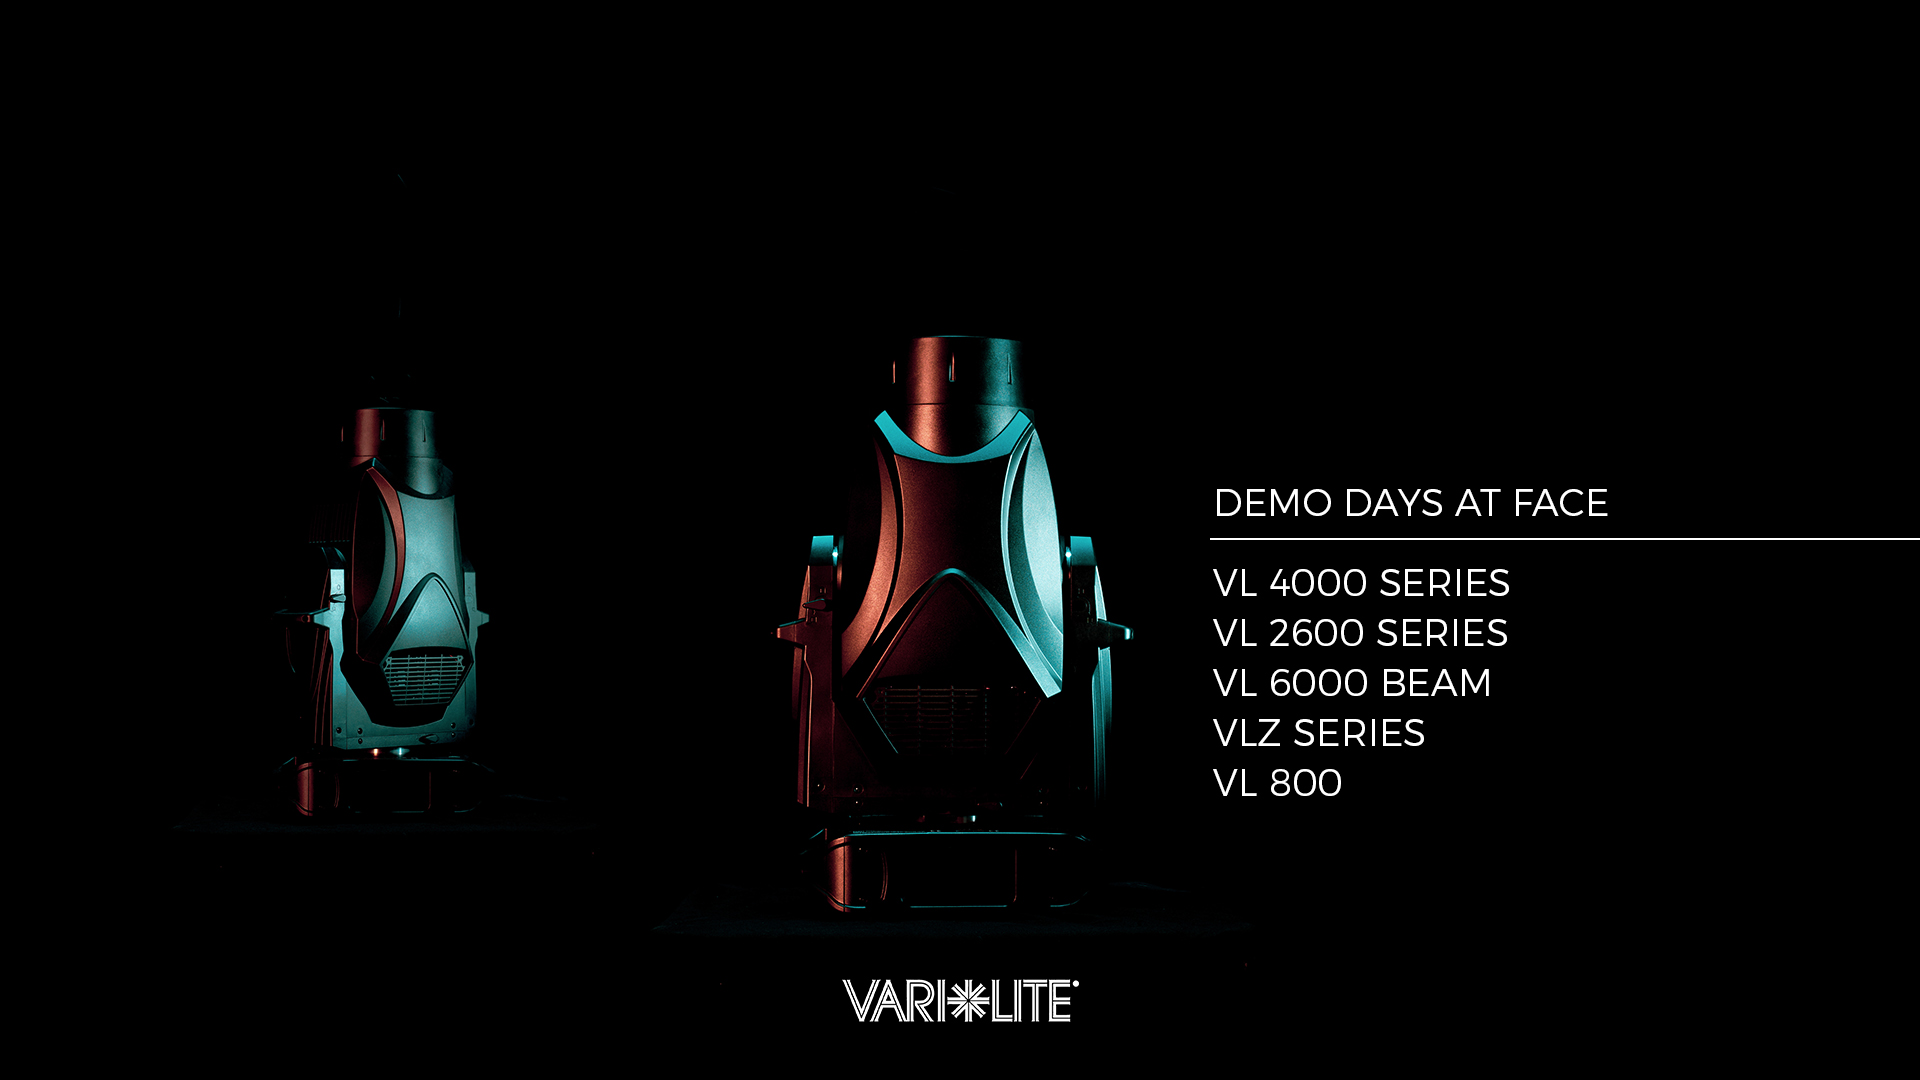 VARI-LITE demo days at FACE